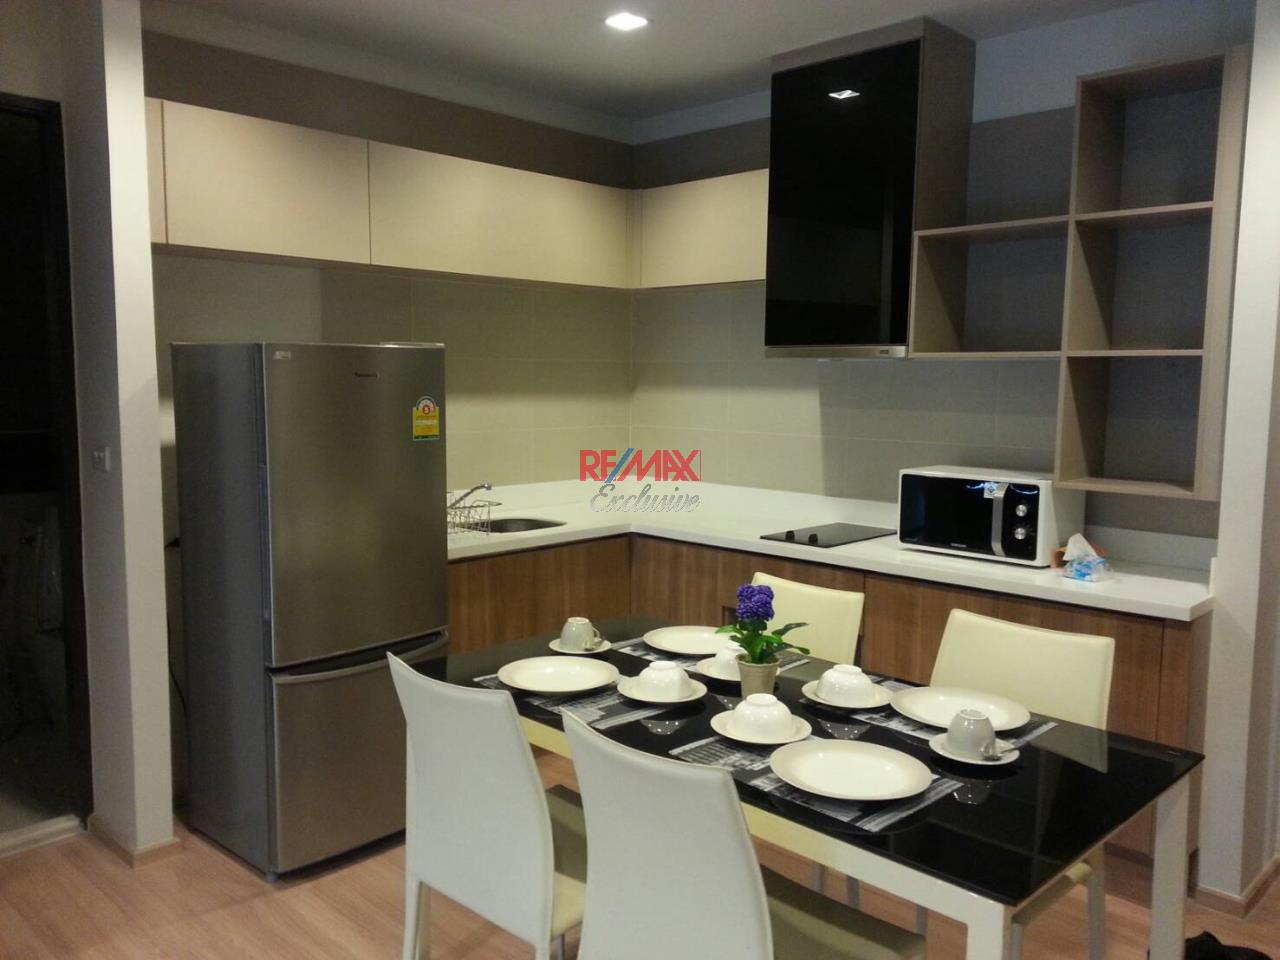 RE/MAX Exclusive Agency's Rhythm Sathorn 2 Bedrooms, 2 Bathrooms For Sale 10,500,000 THB, For Rent 42,000 THB 3